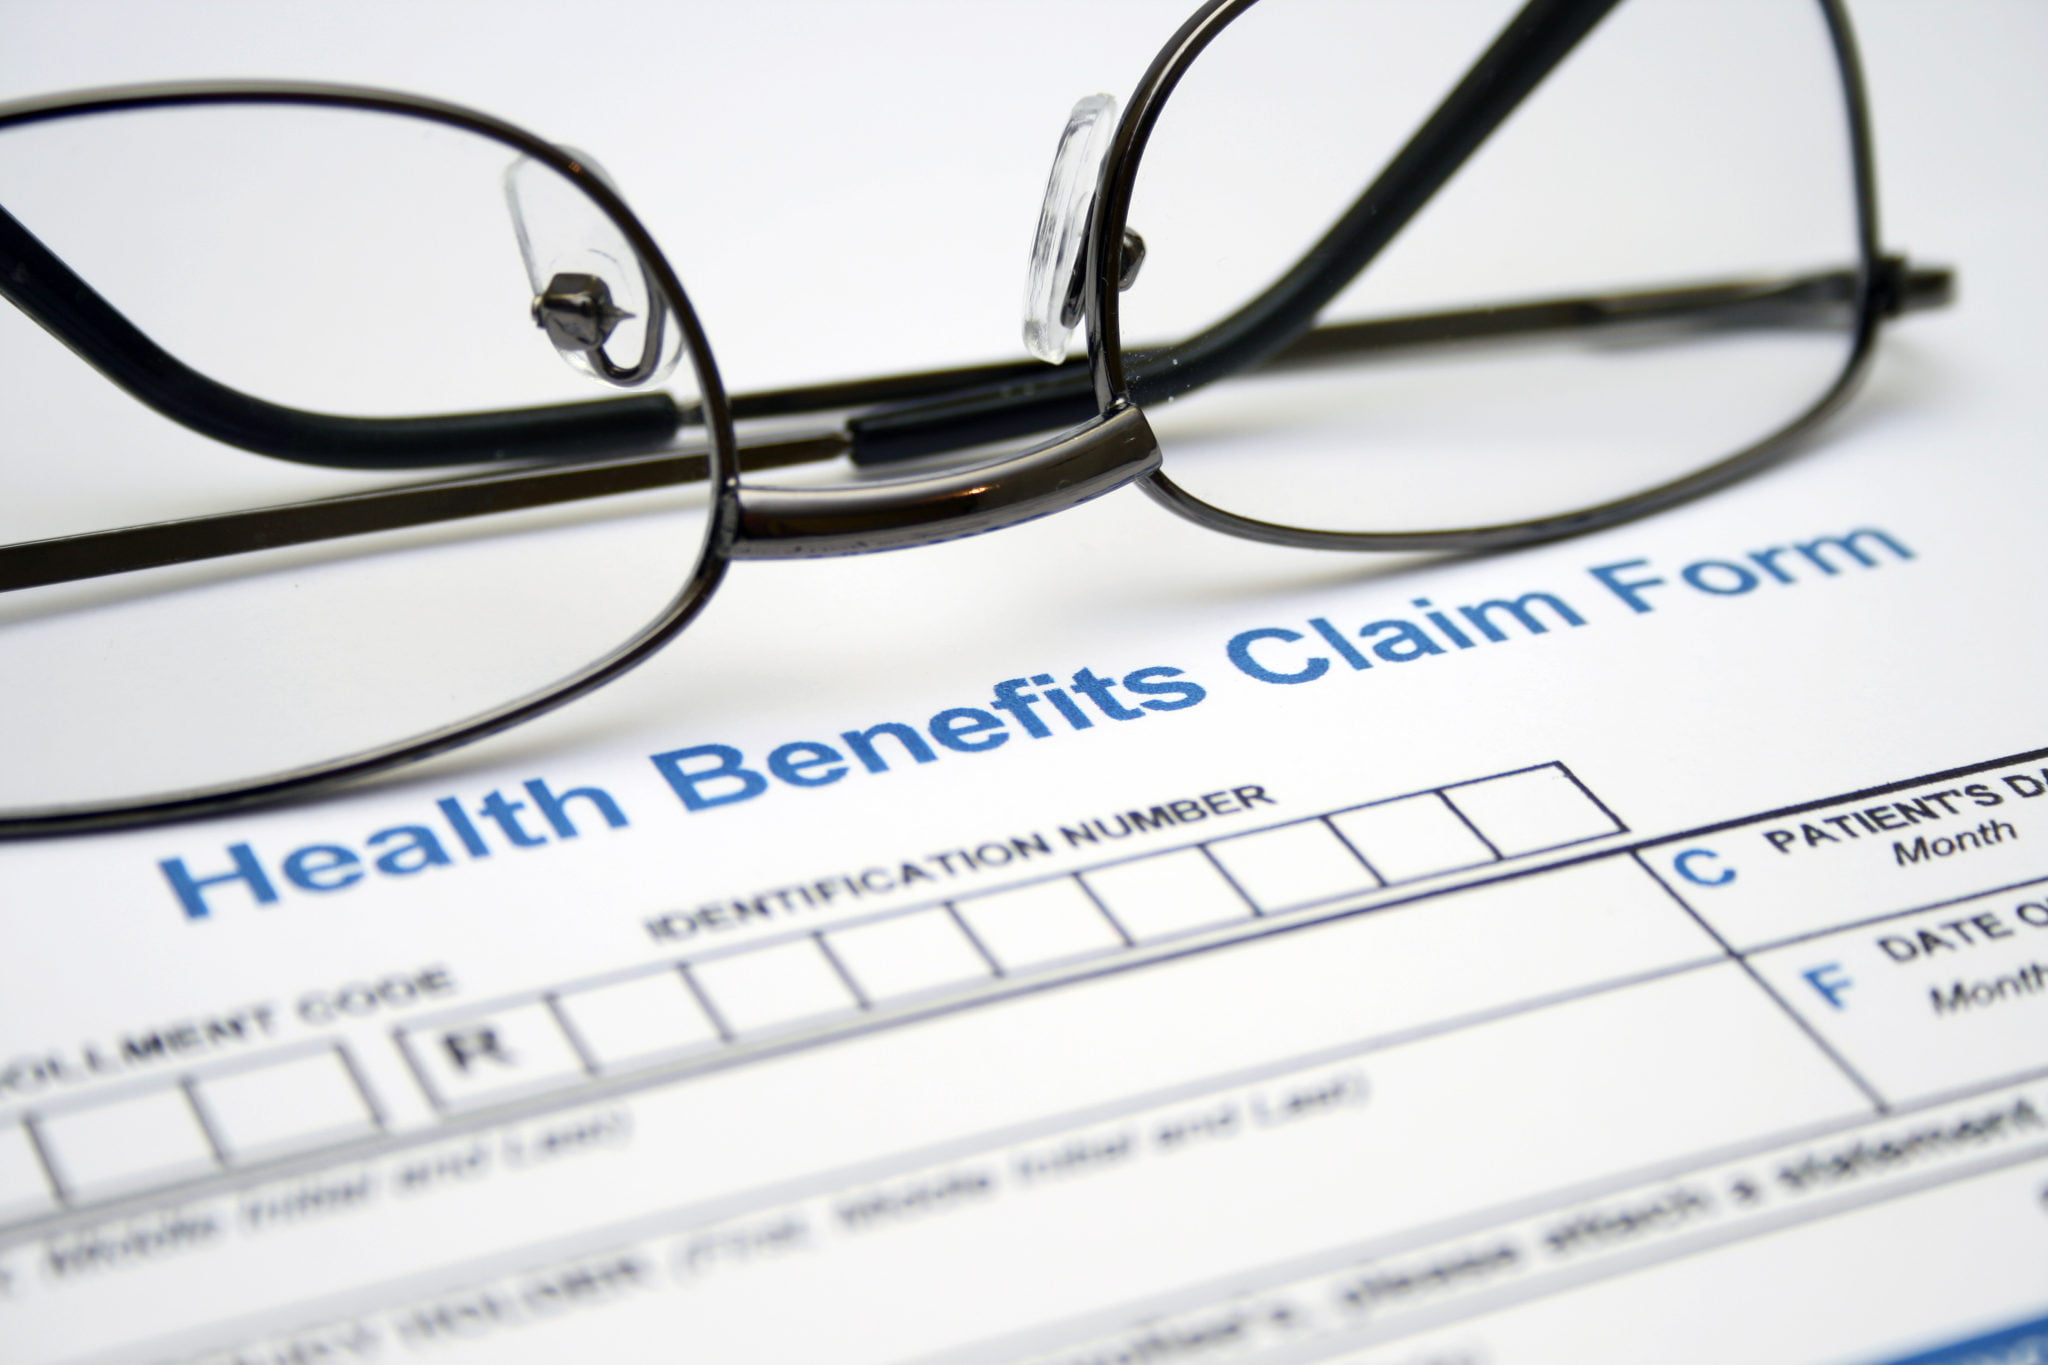 Insurance - Extended Health Benefits Plans, Blue Cross, Motor